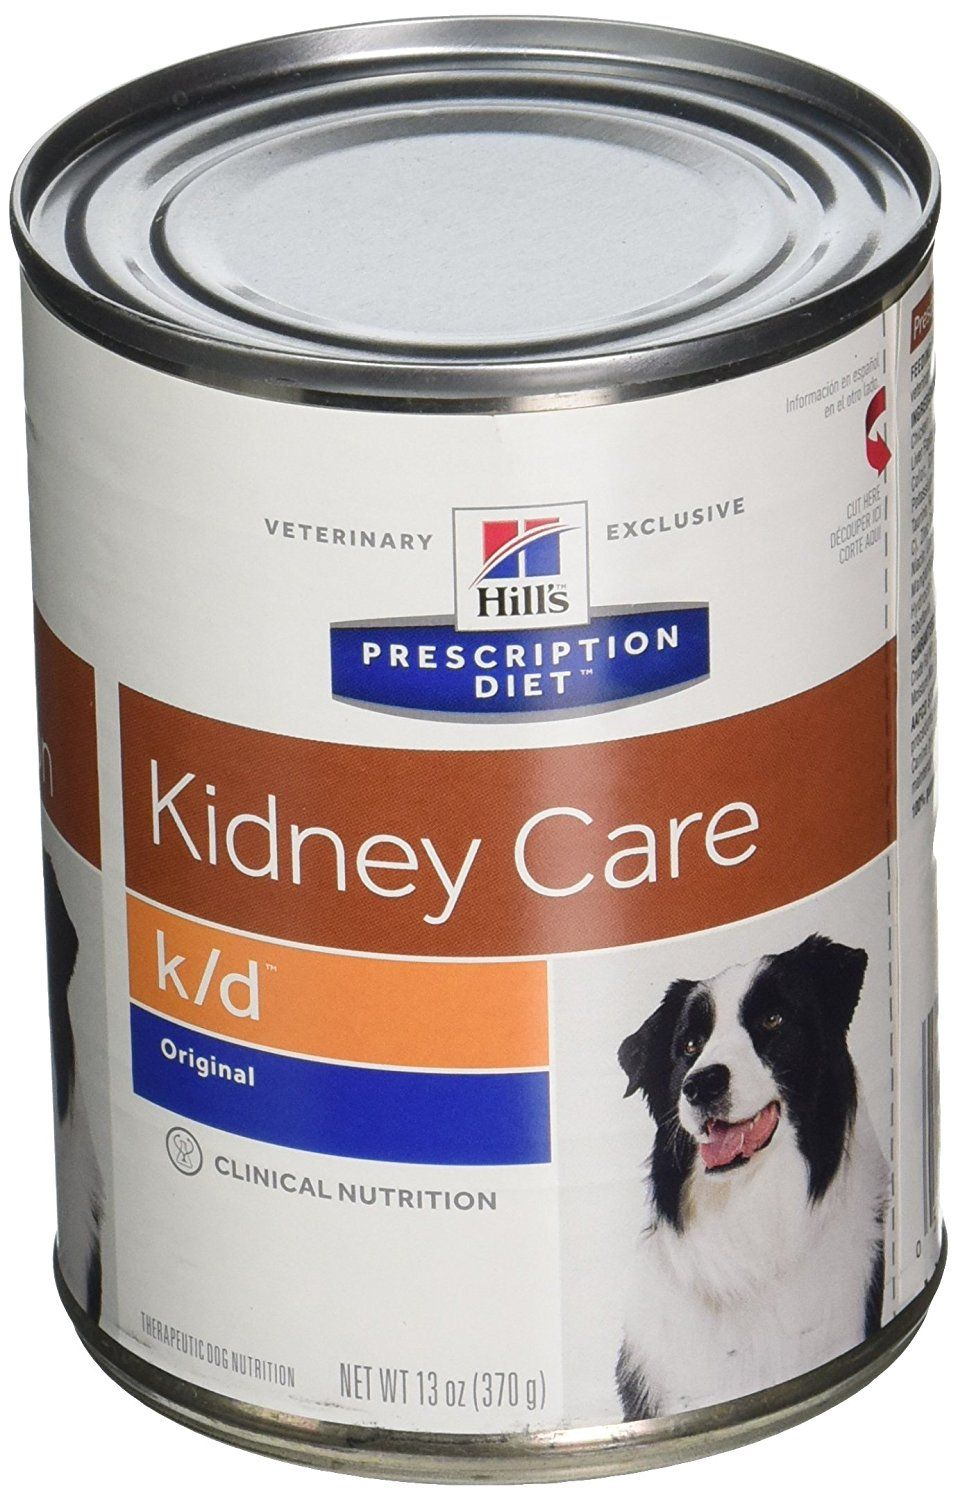 Pin By Cambria Danzl On Dog Food Dog Food Recipes Canned Dog Food Low Protein Dog Food